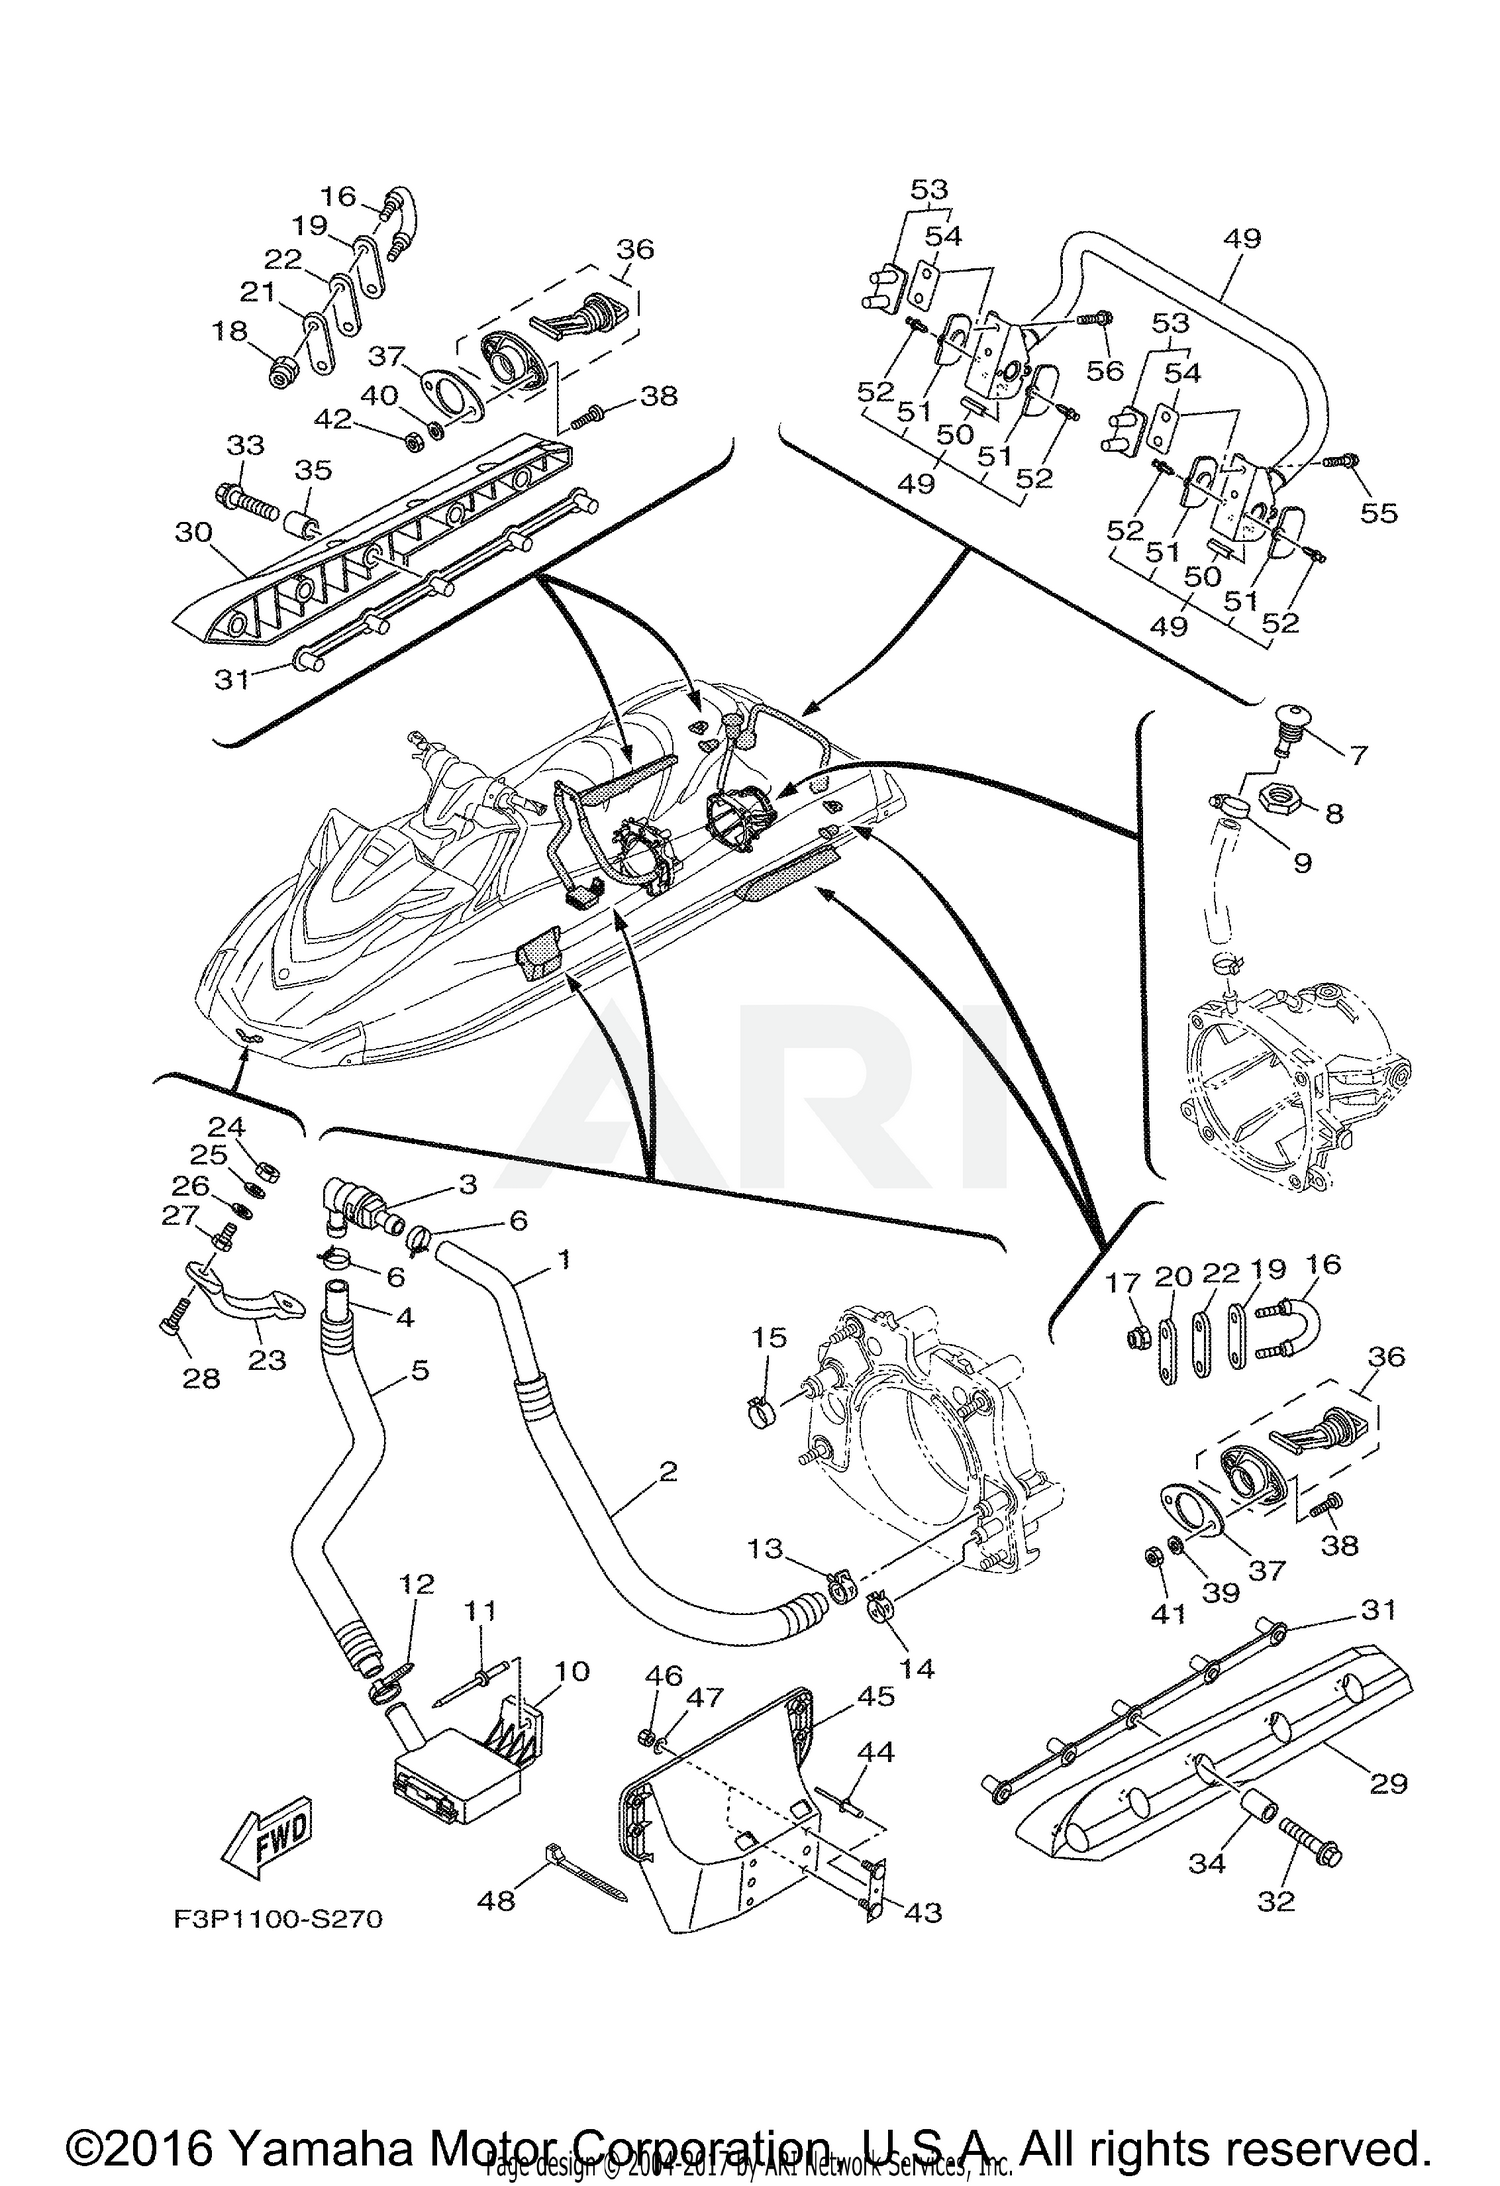 2017 yamaha gp1800 gp1800s hull deck parts best oem Example of a Gunwale schematic search results parts in schematics